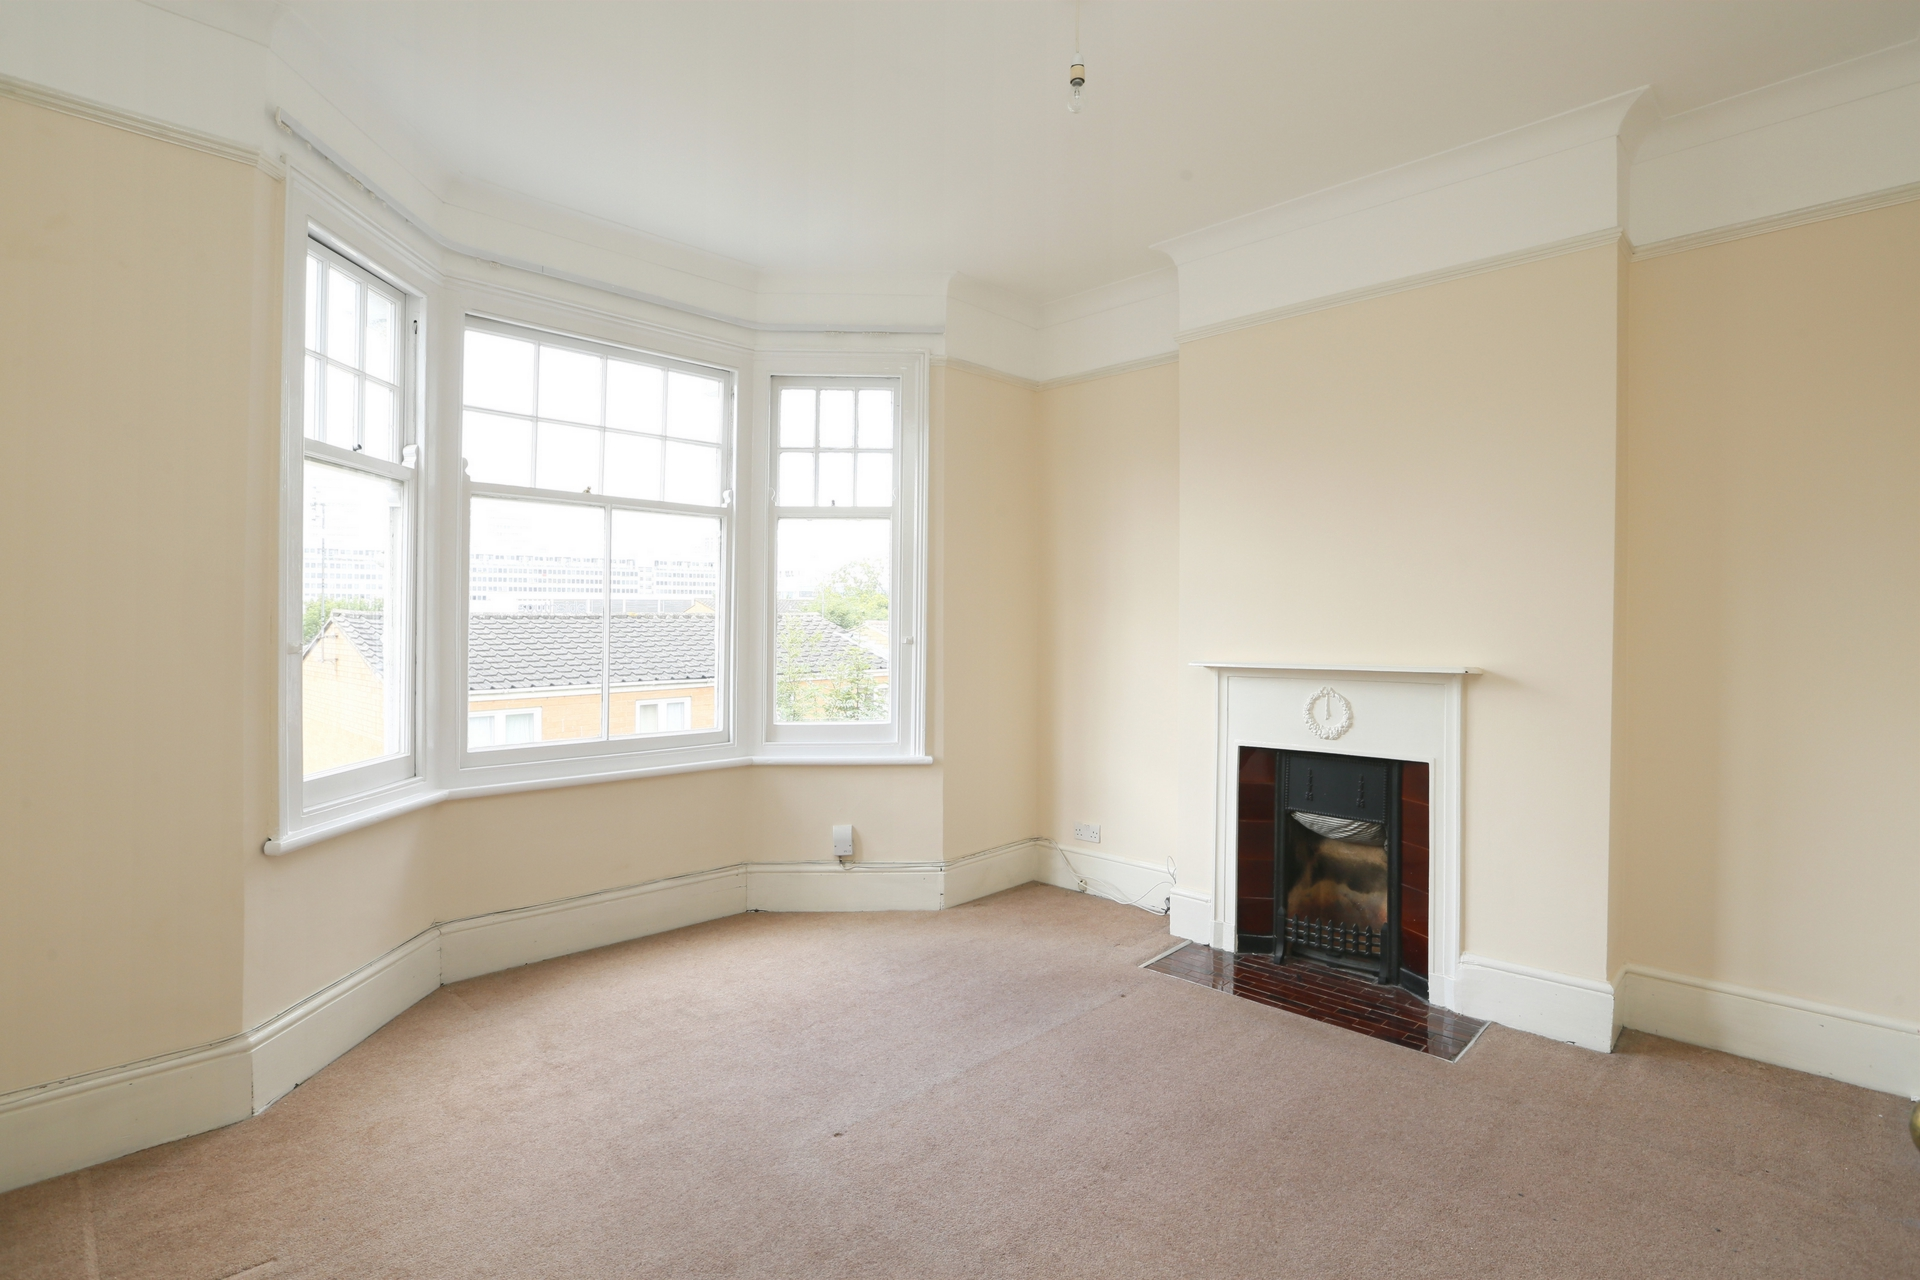 2 Bedroom Flat to rent in Wandsworth, London, SW18